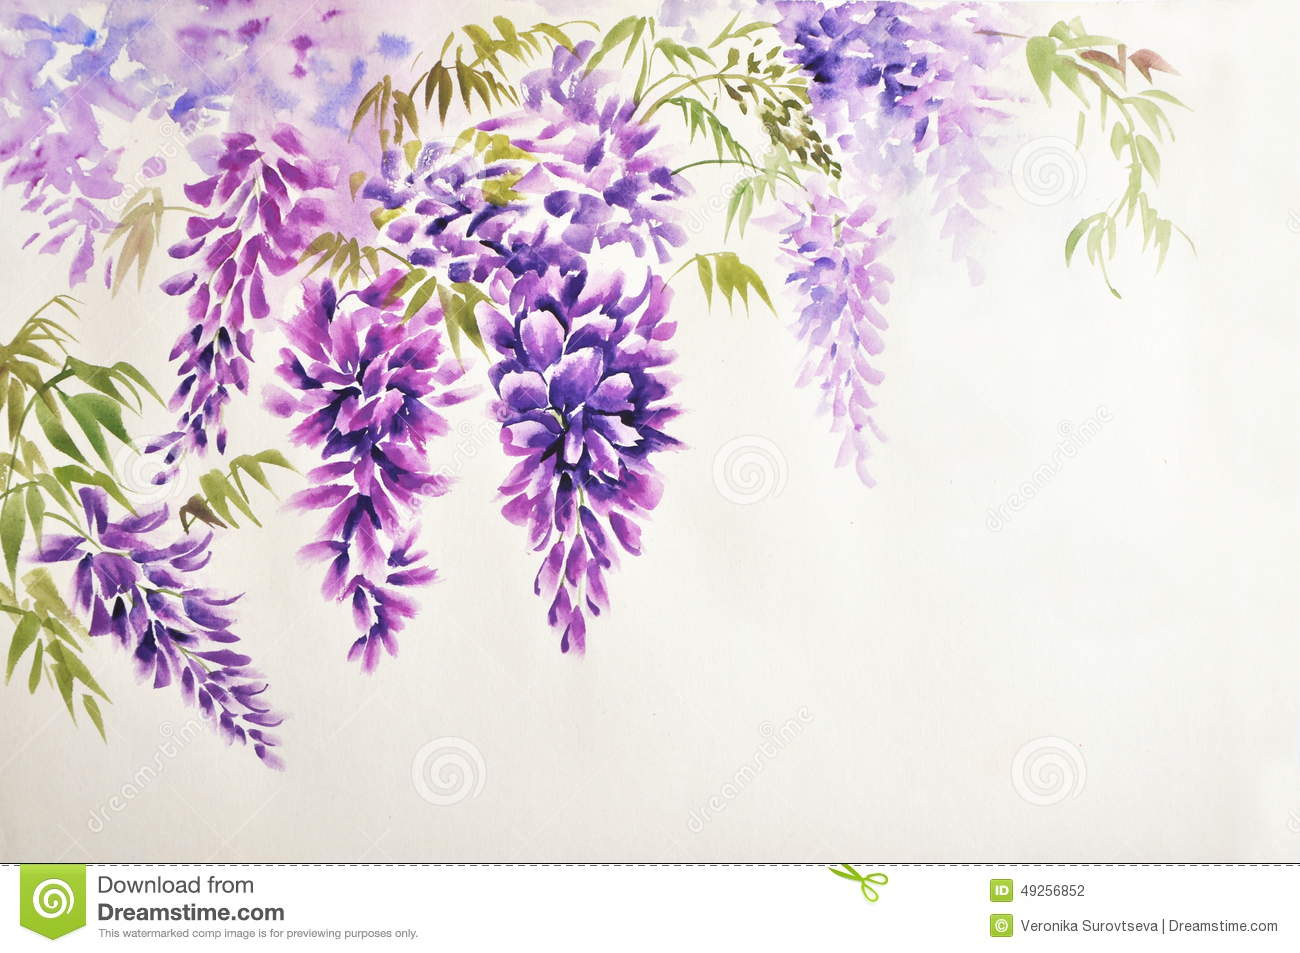 Wisteria clipart #4, Download drawings